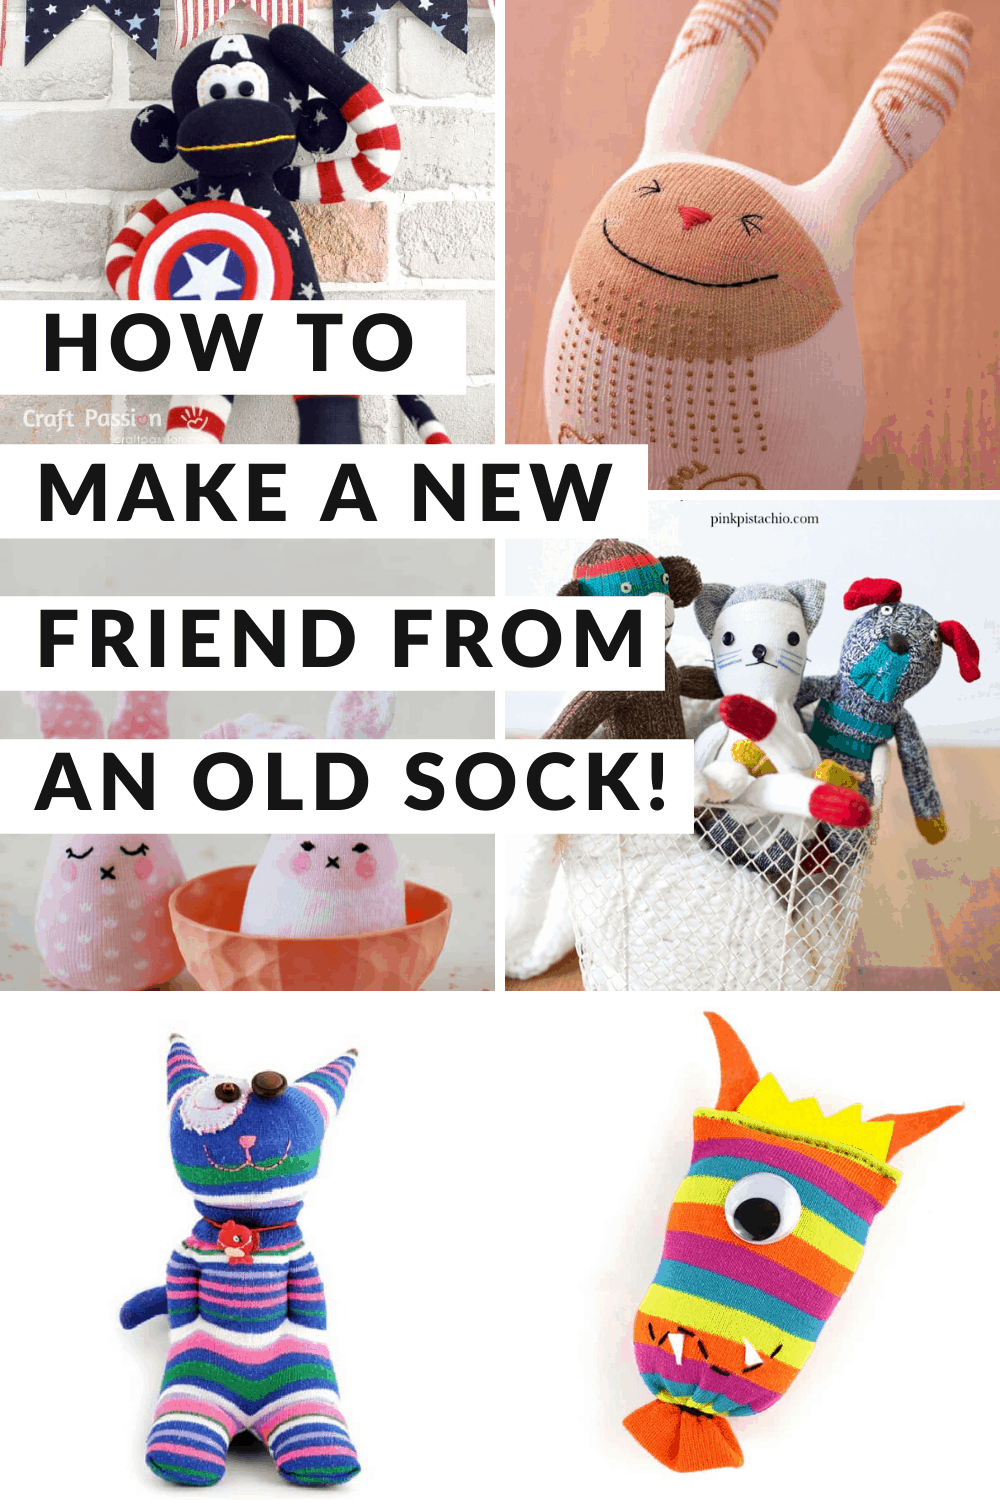 Find out how to make an adorable sock plushie or two - that make great playmates for your kids!